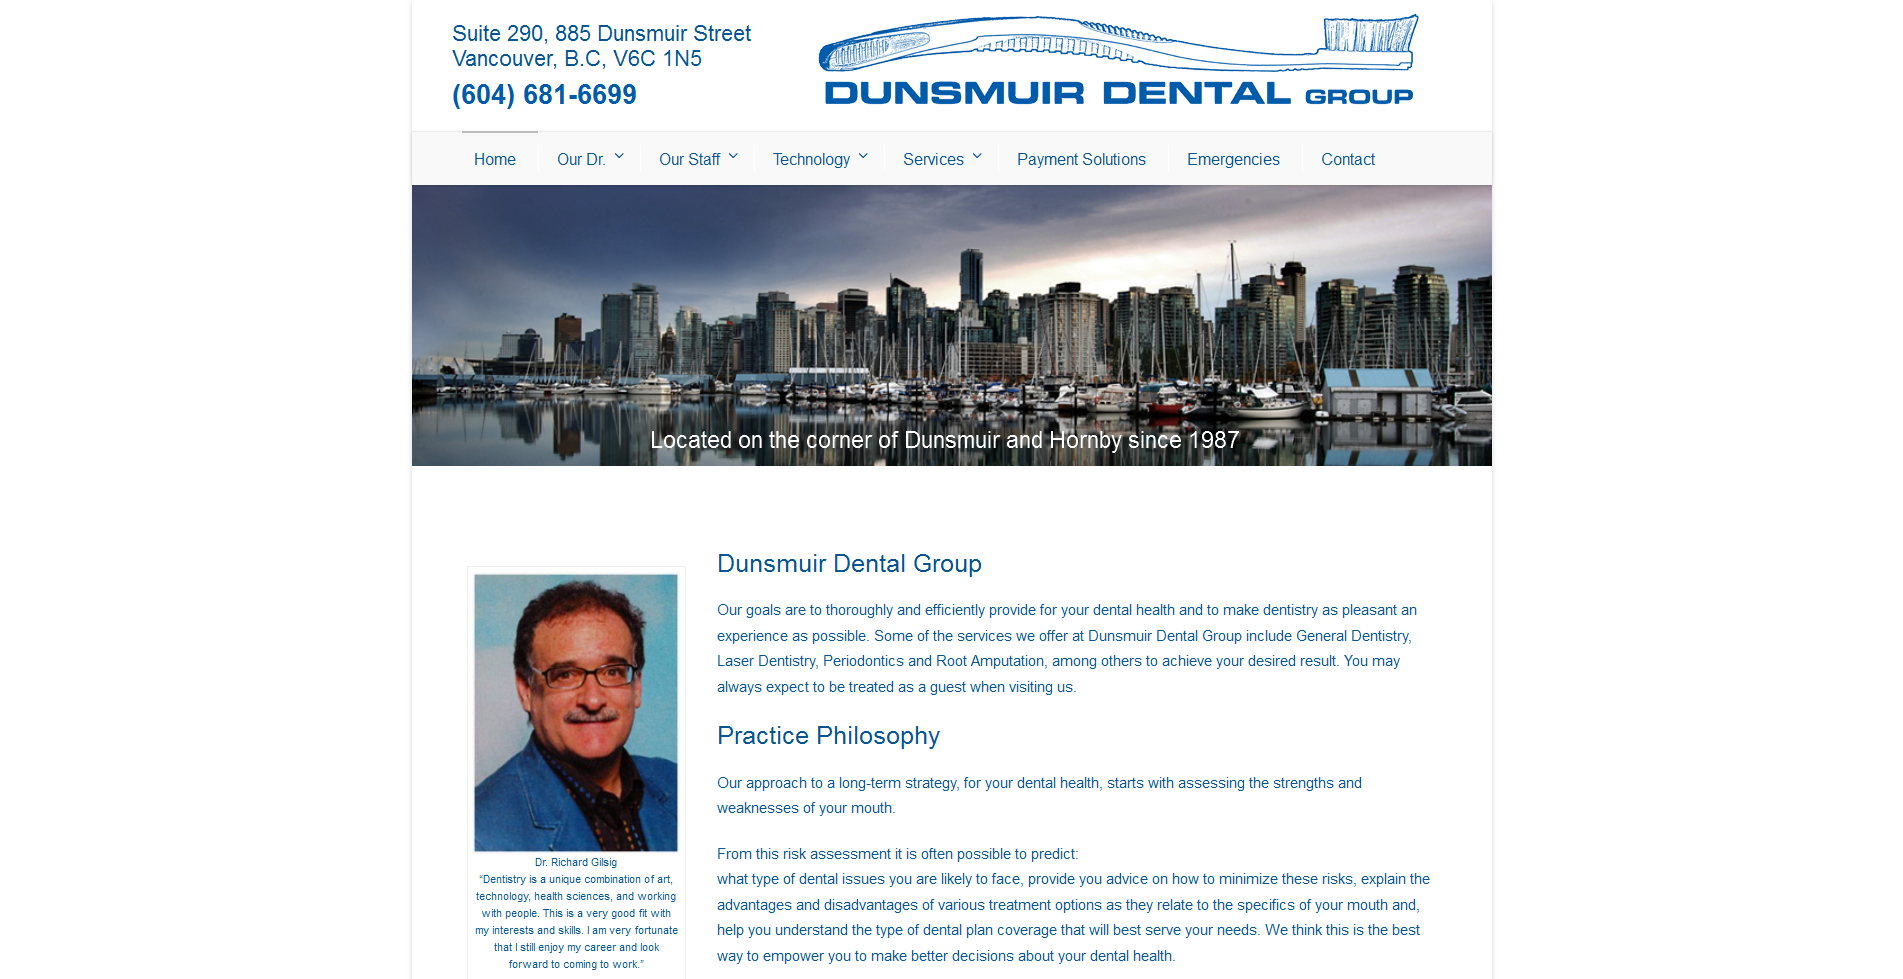 dunsmuir dental | vancouver dental website